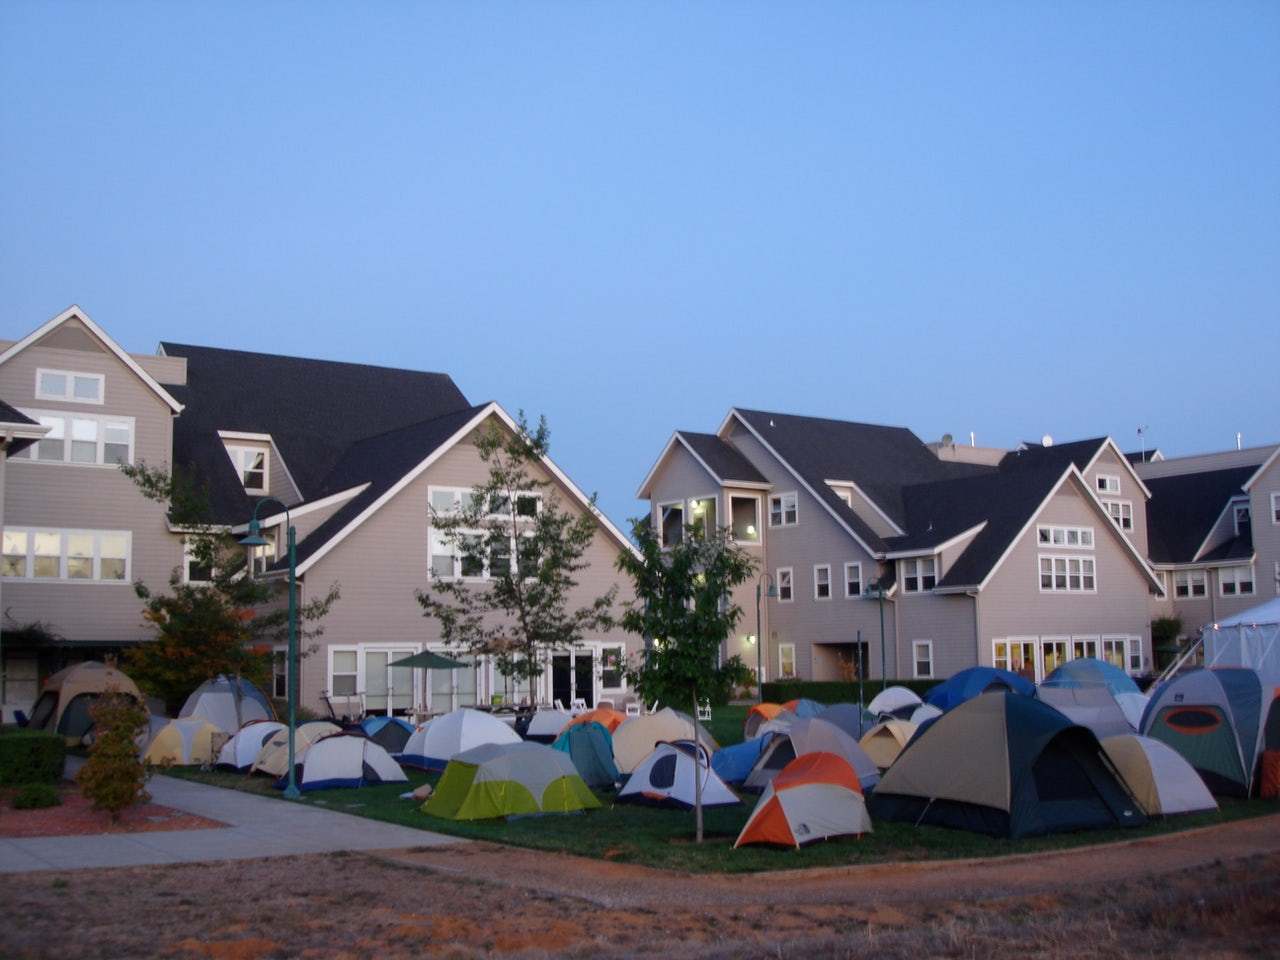 Tents on the lawn at foo camp in 2009 at the O'Reilly Media offices in Sebastopol, California.